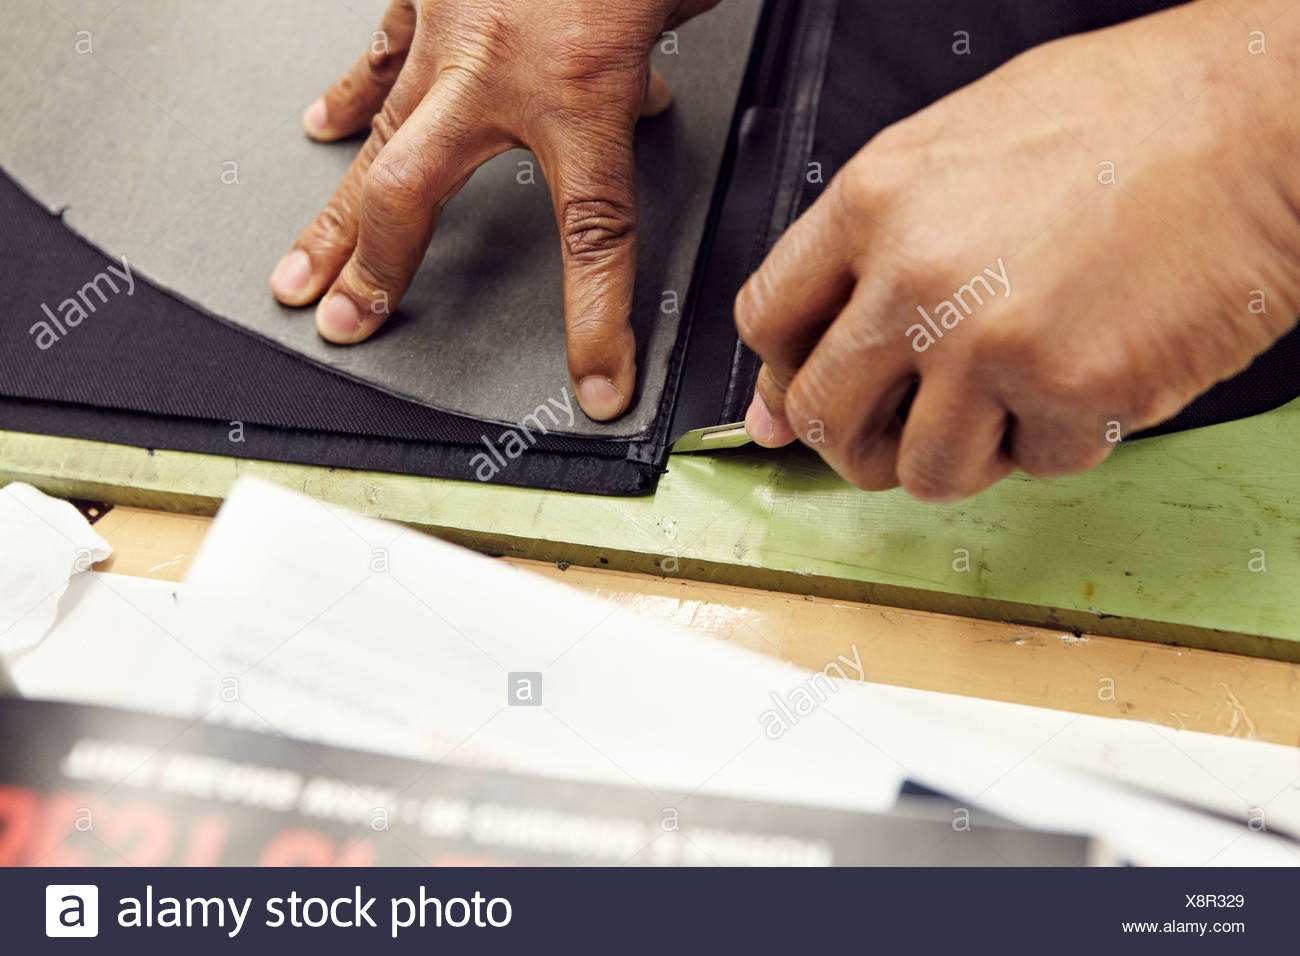 Close up of hands cutting leather - Stock Image